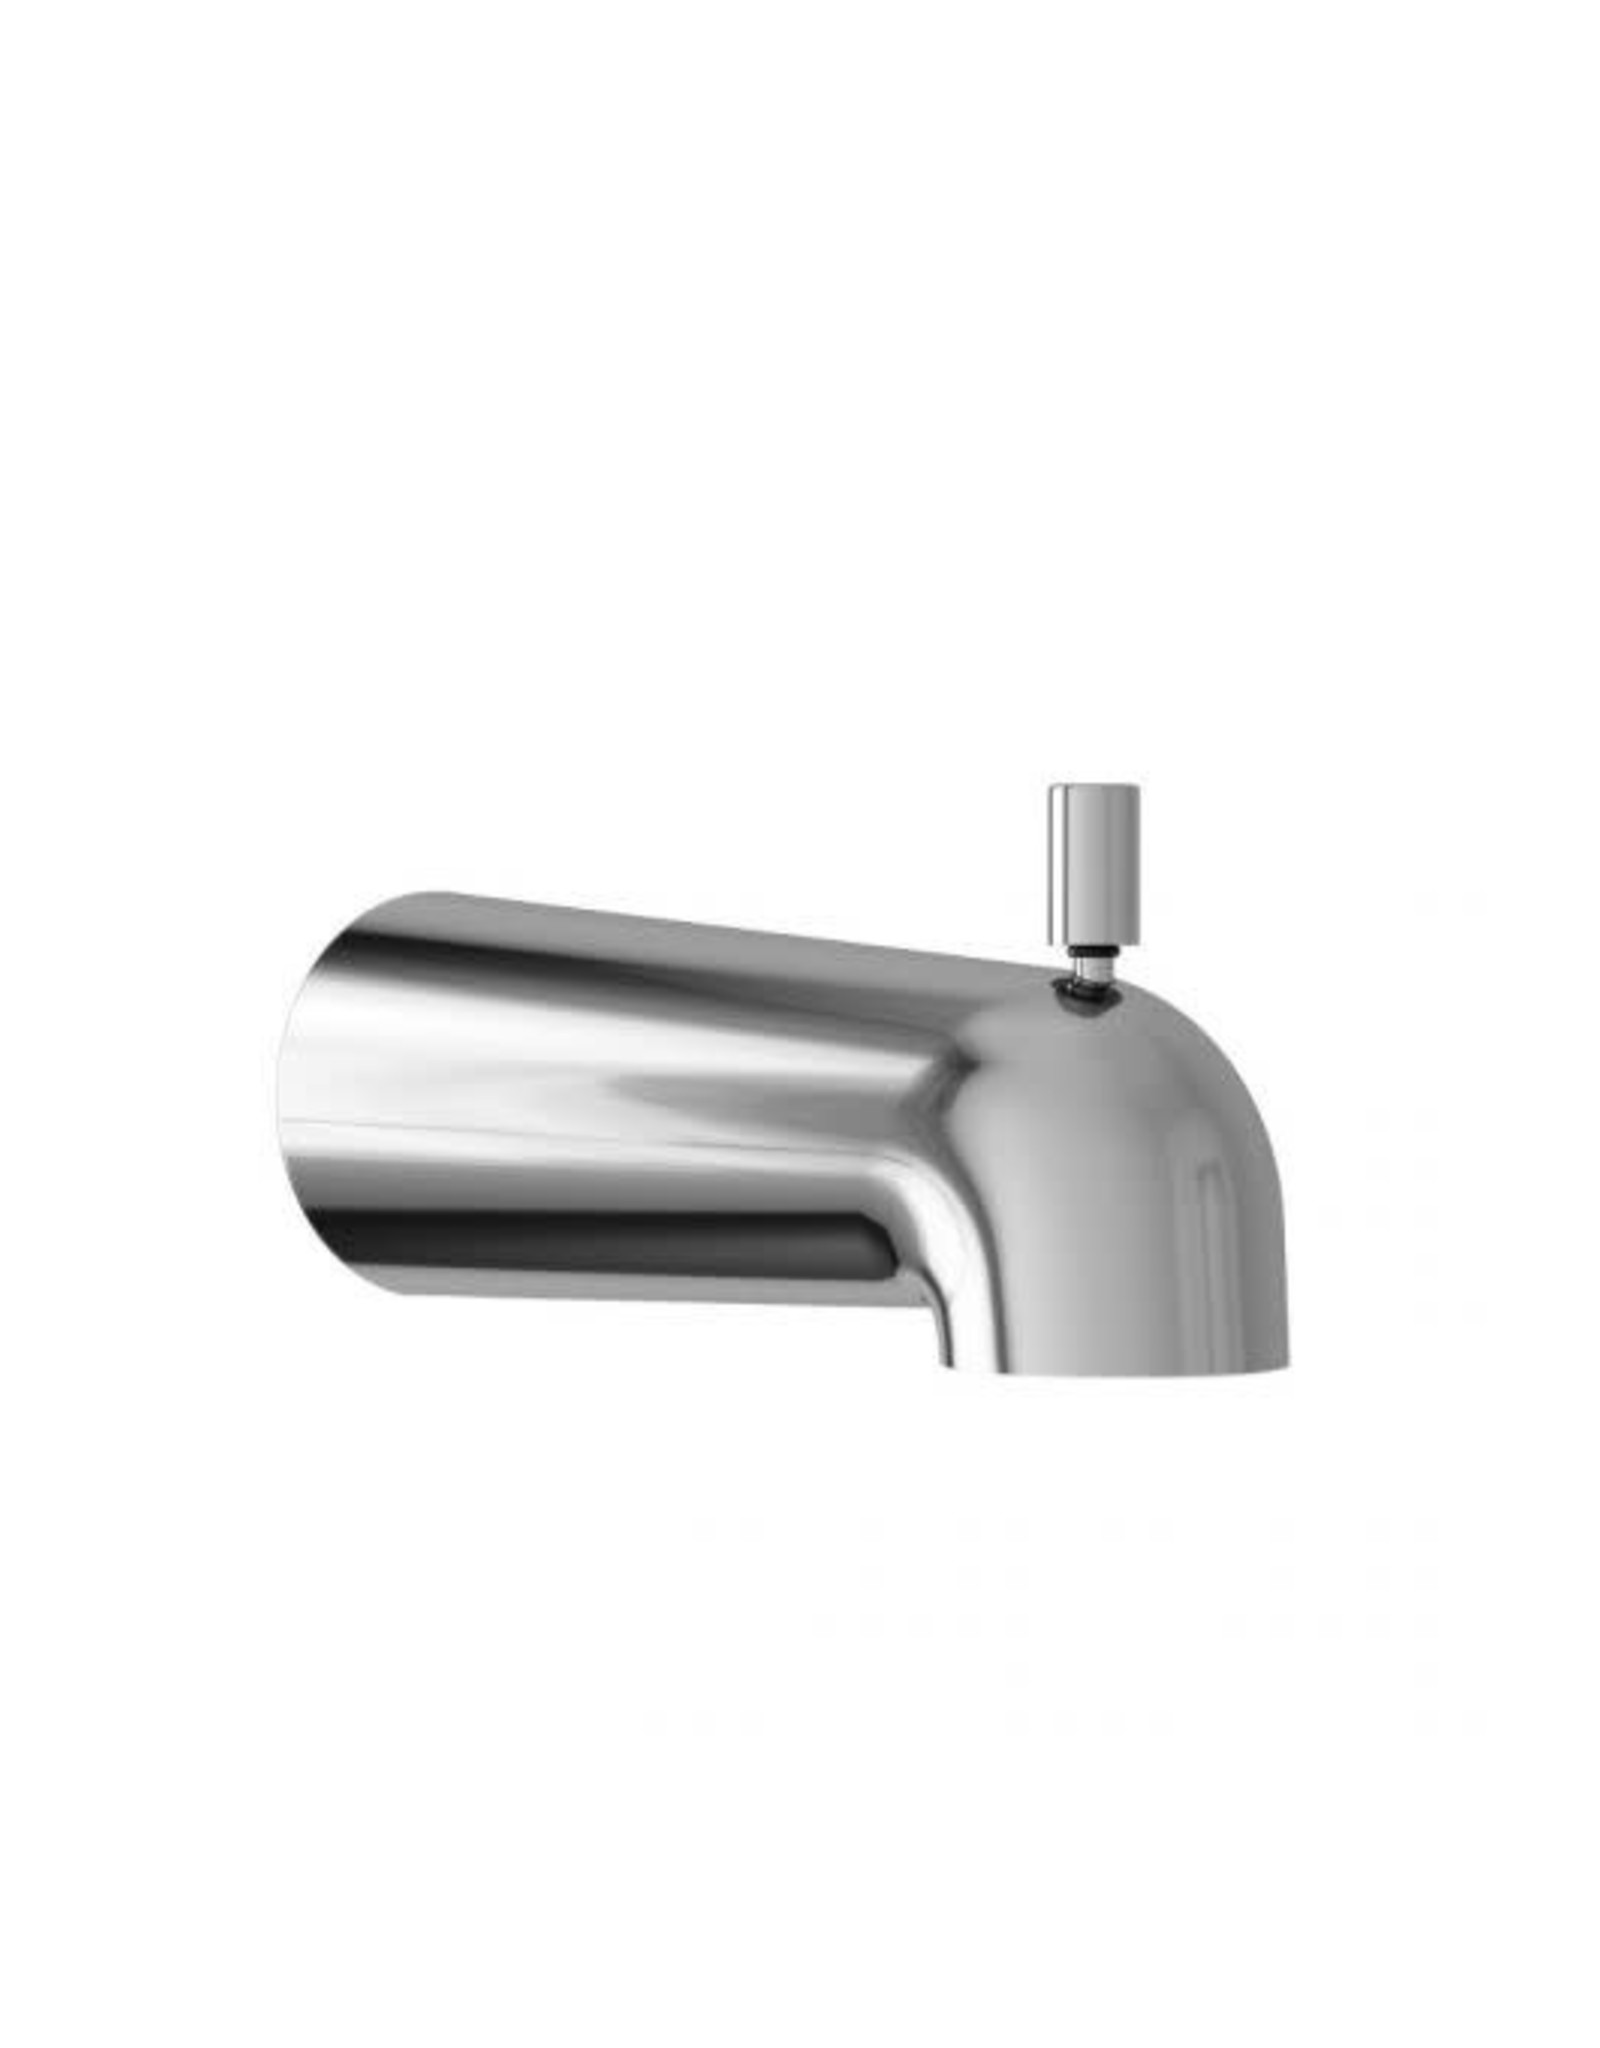 Kalia Kalia Basico Round Tub Spout w/ Diverter- Chrome